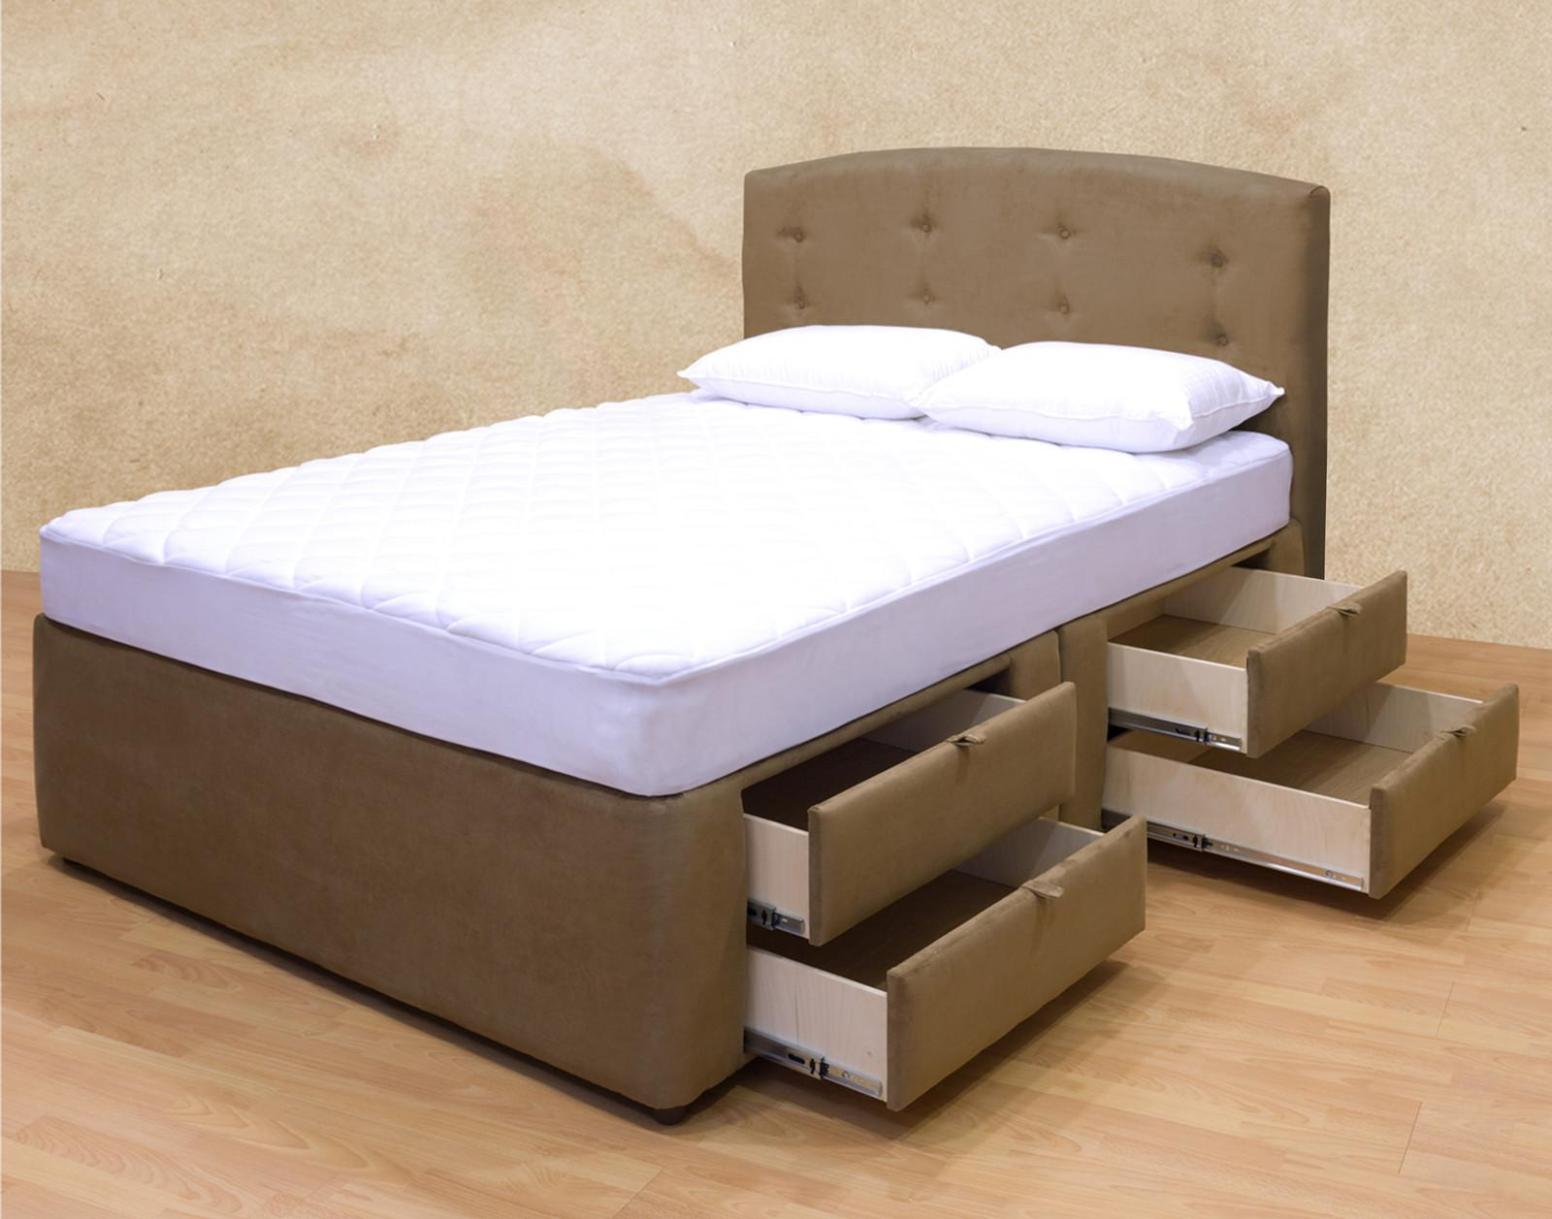 Image of: Diy Queen Bed Frame With Drawers